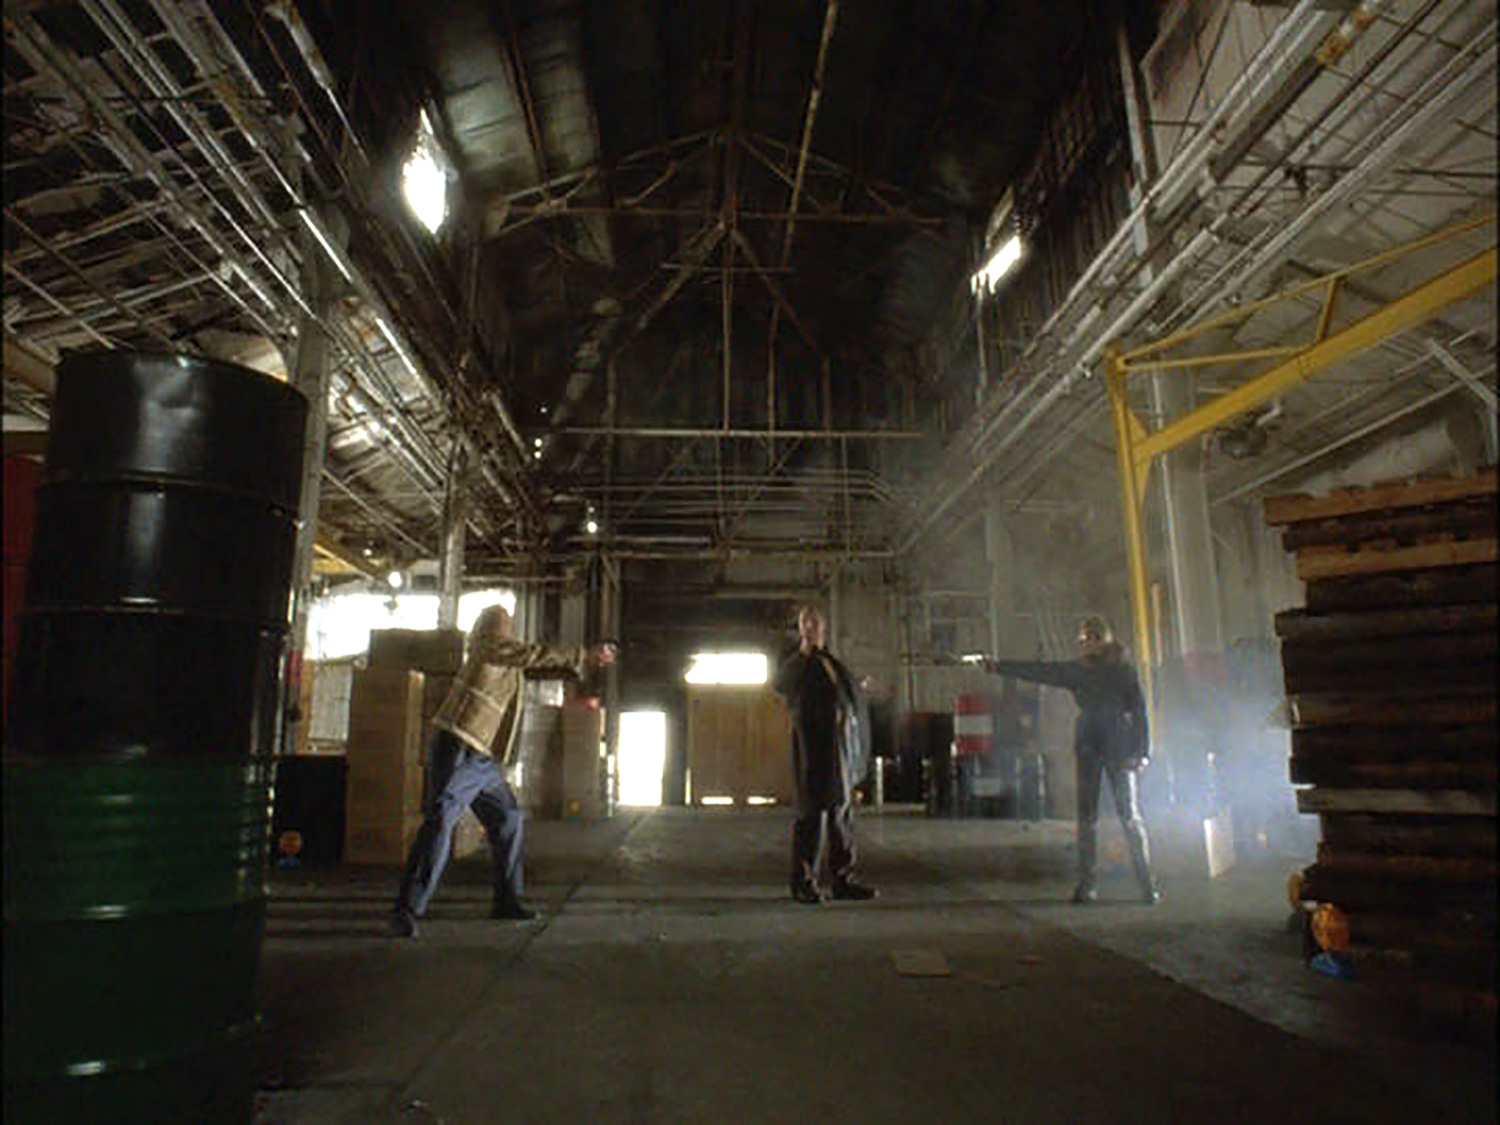 More warehouse dress/build-out for a gunfight.